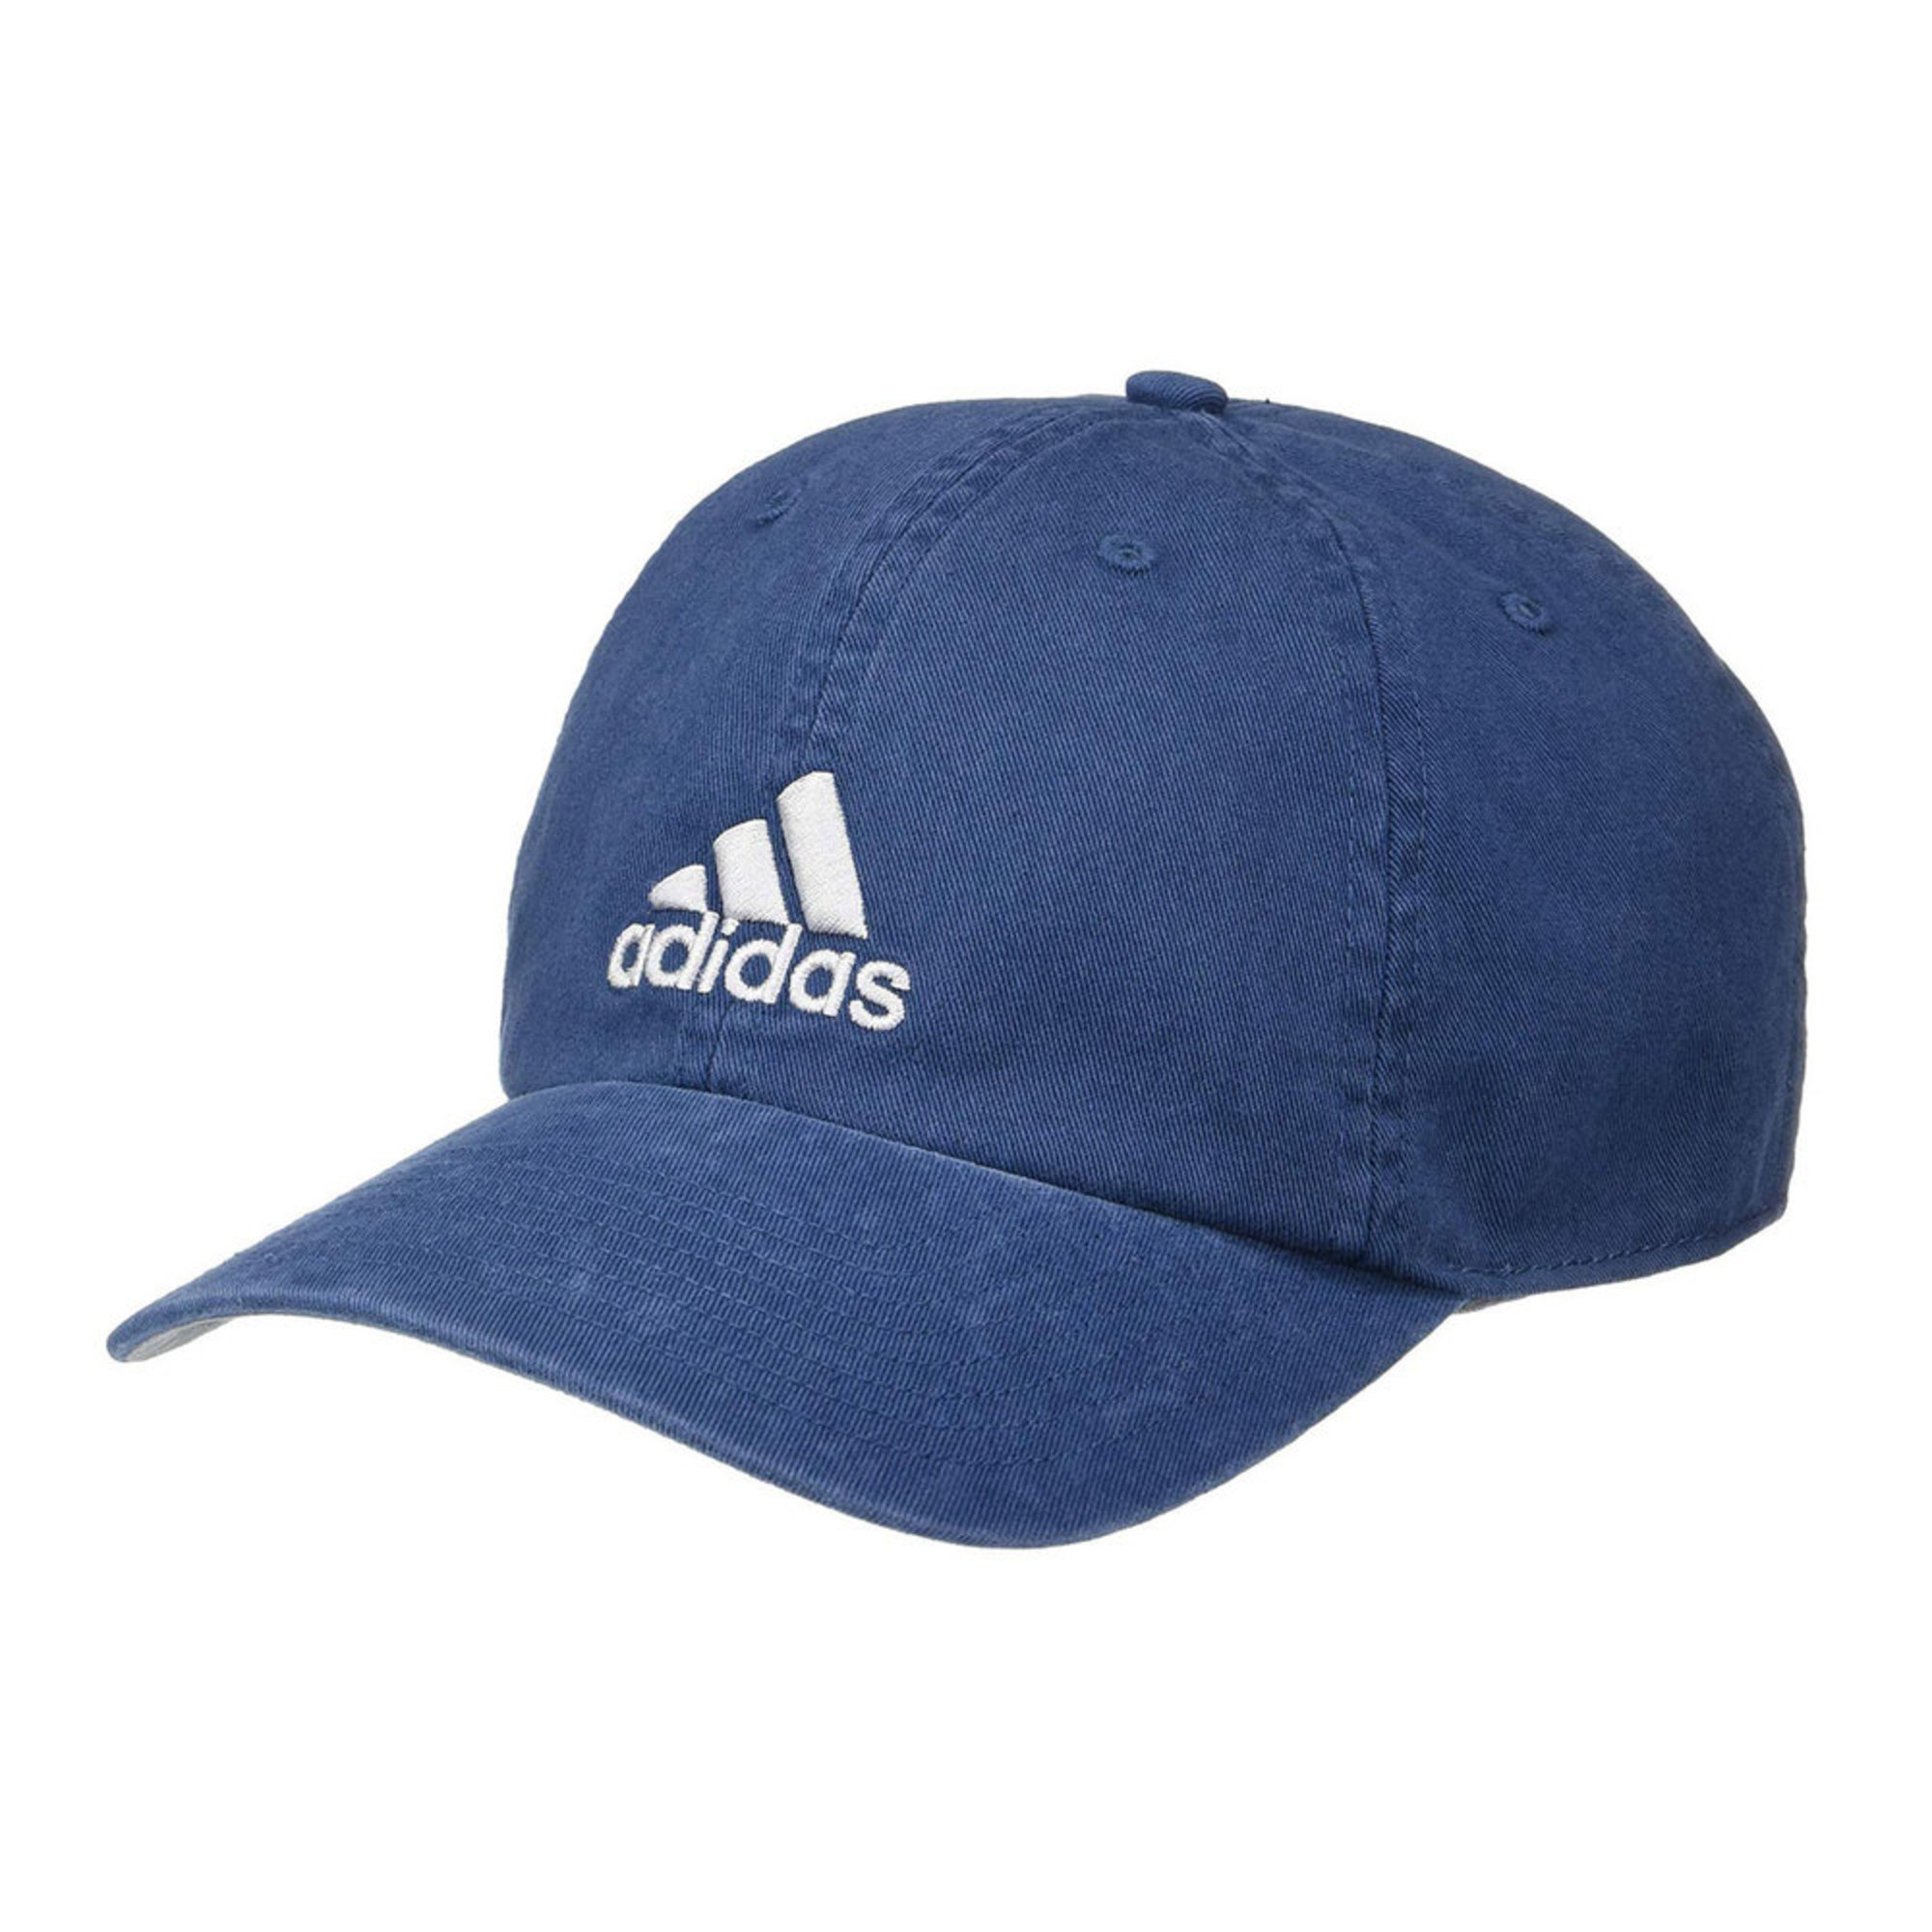 28839be0f98 Adidas Men s Ultimate Hat